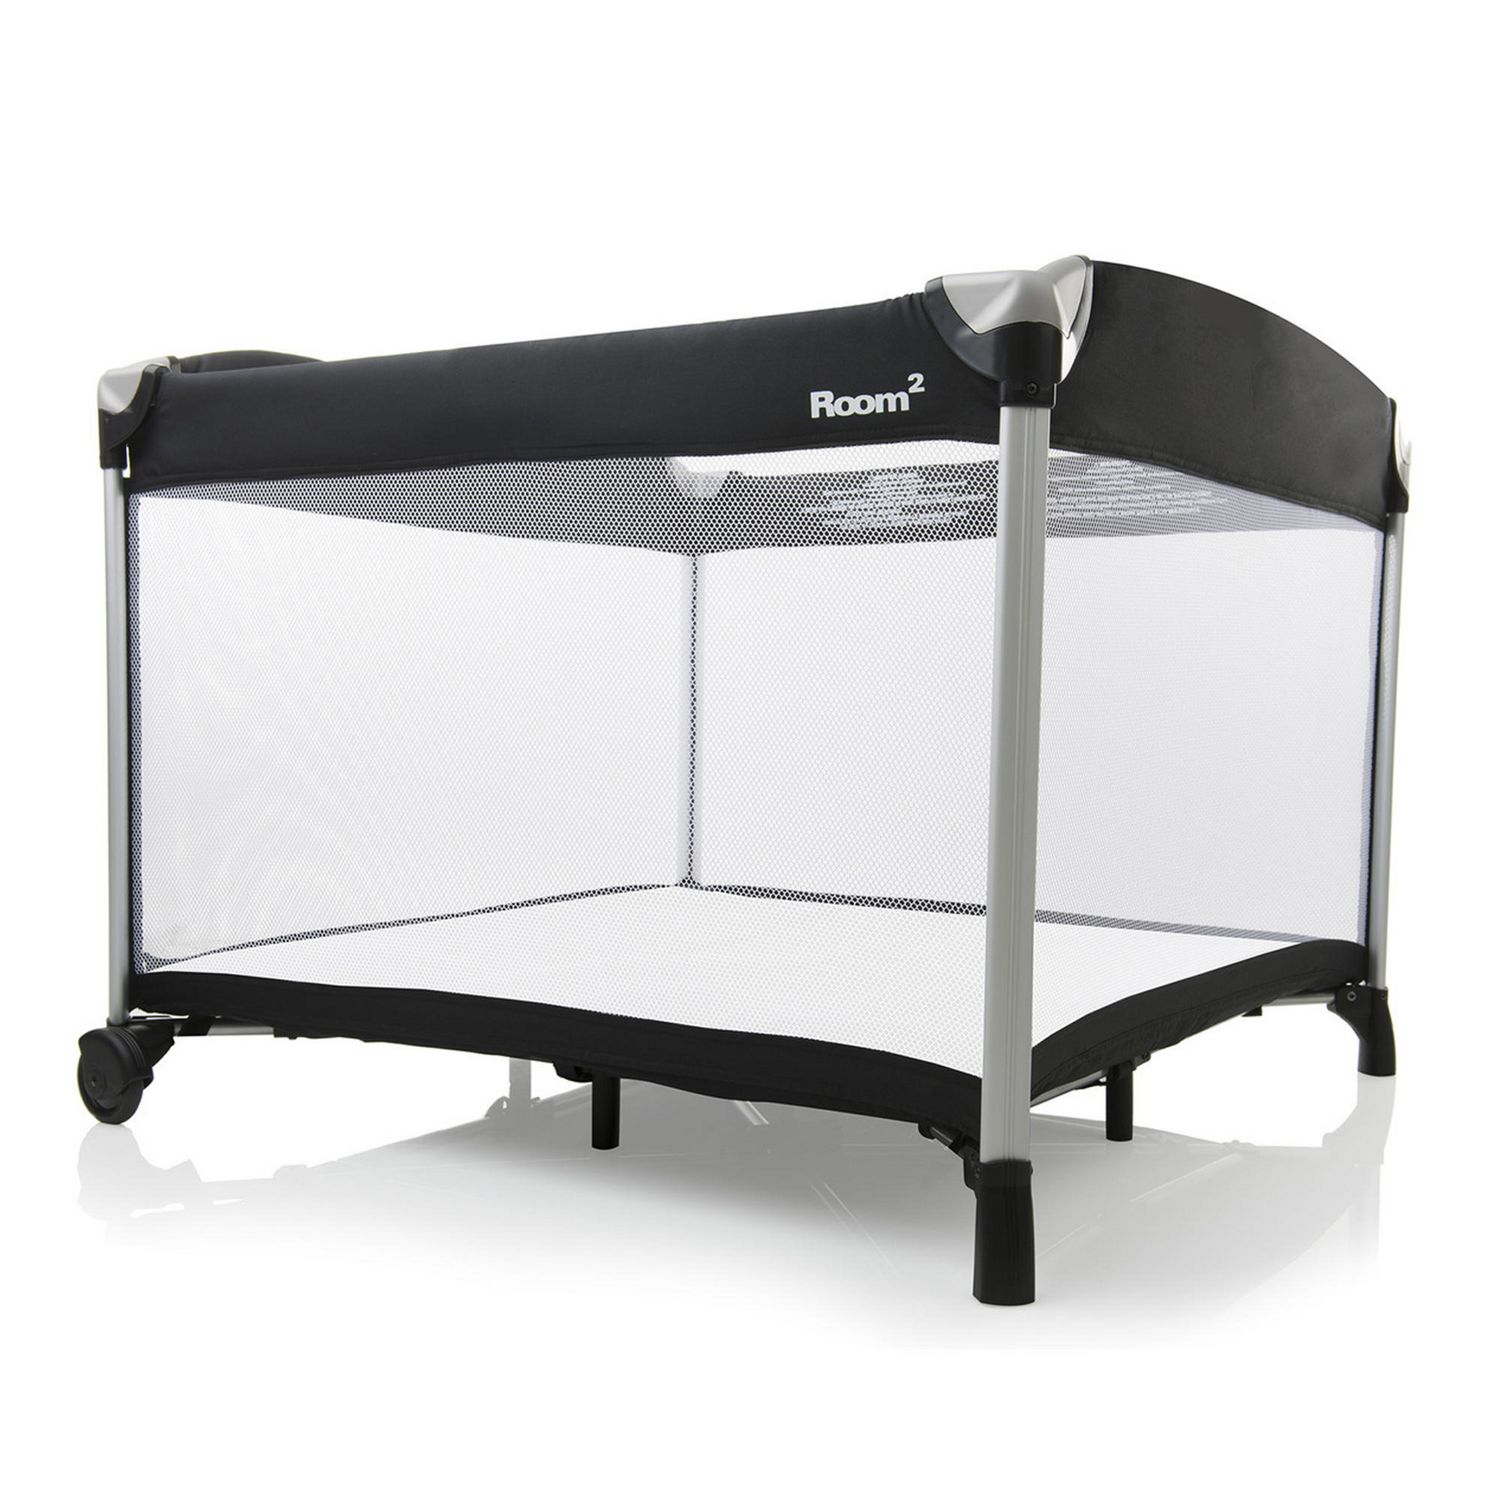 Joovy New Room2 Playard – Best Large Playpen